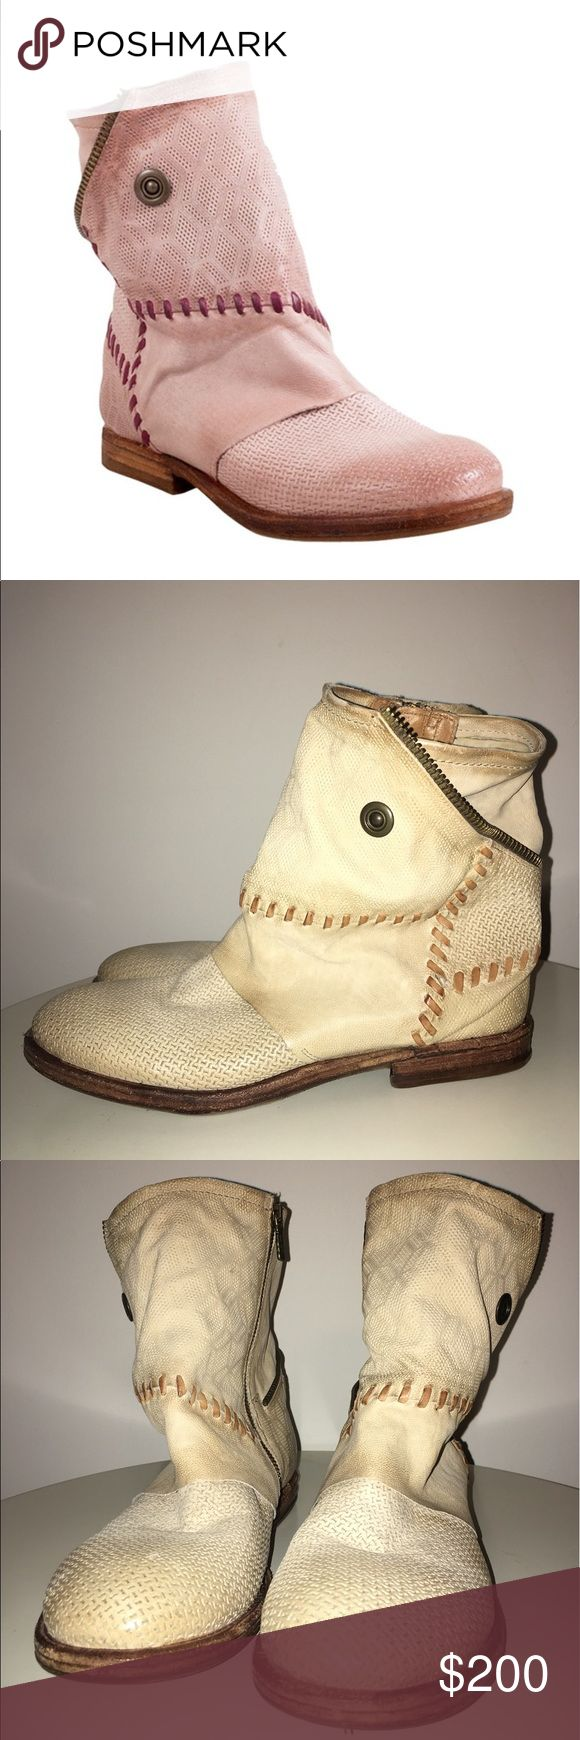 """Free People AS 98 Thompson Stitch Ankle Boots Lightly Worn!  Round burnished toe.   Textured leather construction.   Whipstitched and wrap-around zipper teeth detailed shaft.   Side zip closure.   Approx. 6.5"""" shaft height, 10.5"""" opening circumference.   Approx. 1"""" heel.   Leather upper and lining, rubber sole..   Color: Beige   Please Note The Stock Photos Are Being Used For Reference The Boots For Sale Are Beige Not Pink! AS 98 Shoes Ankle Boots & Booties"""